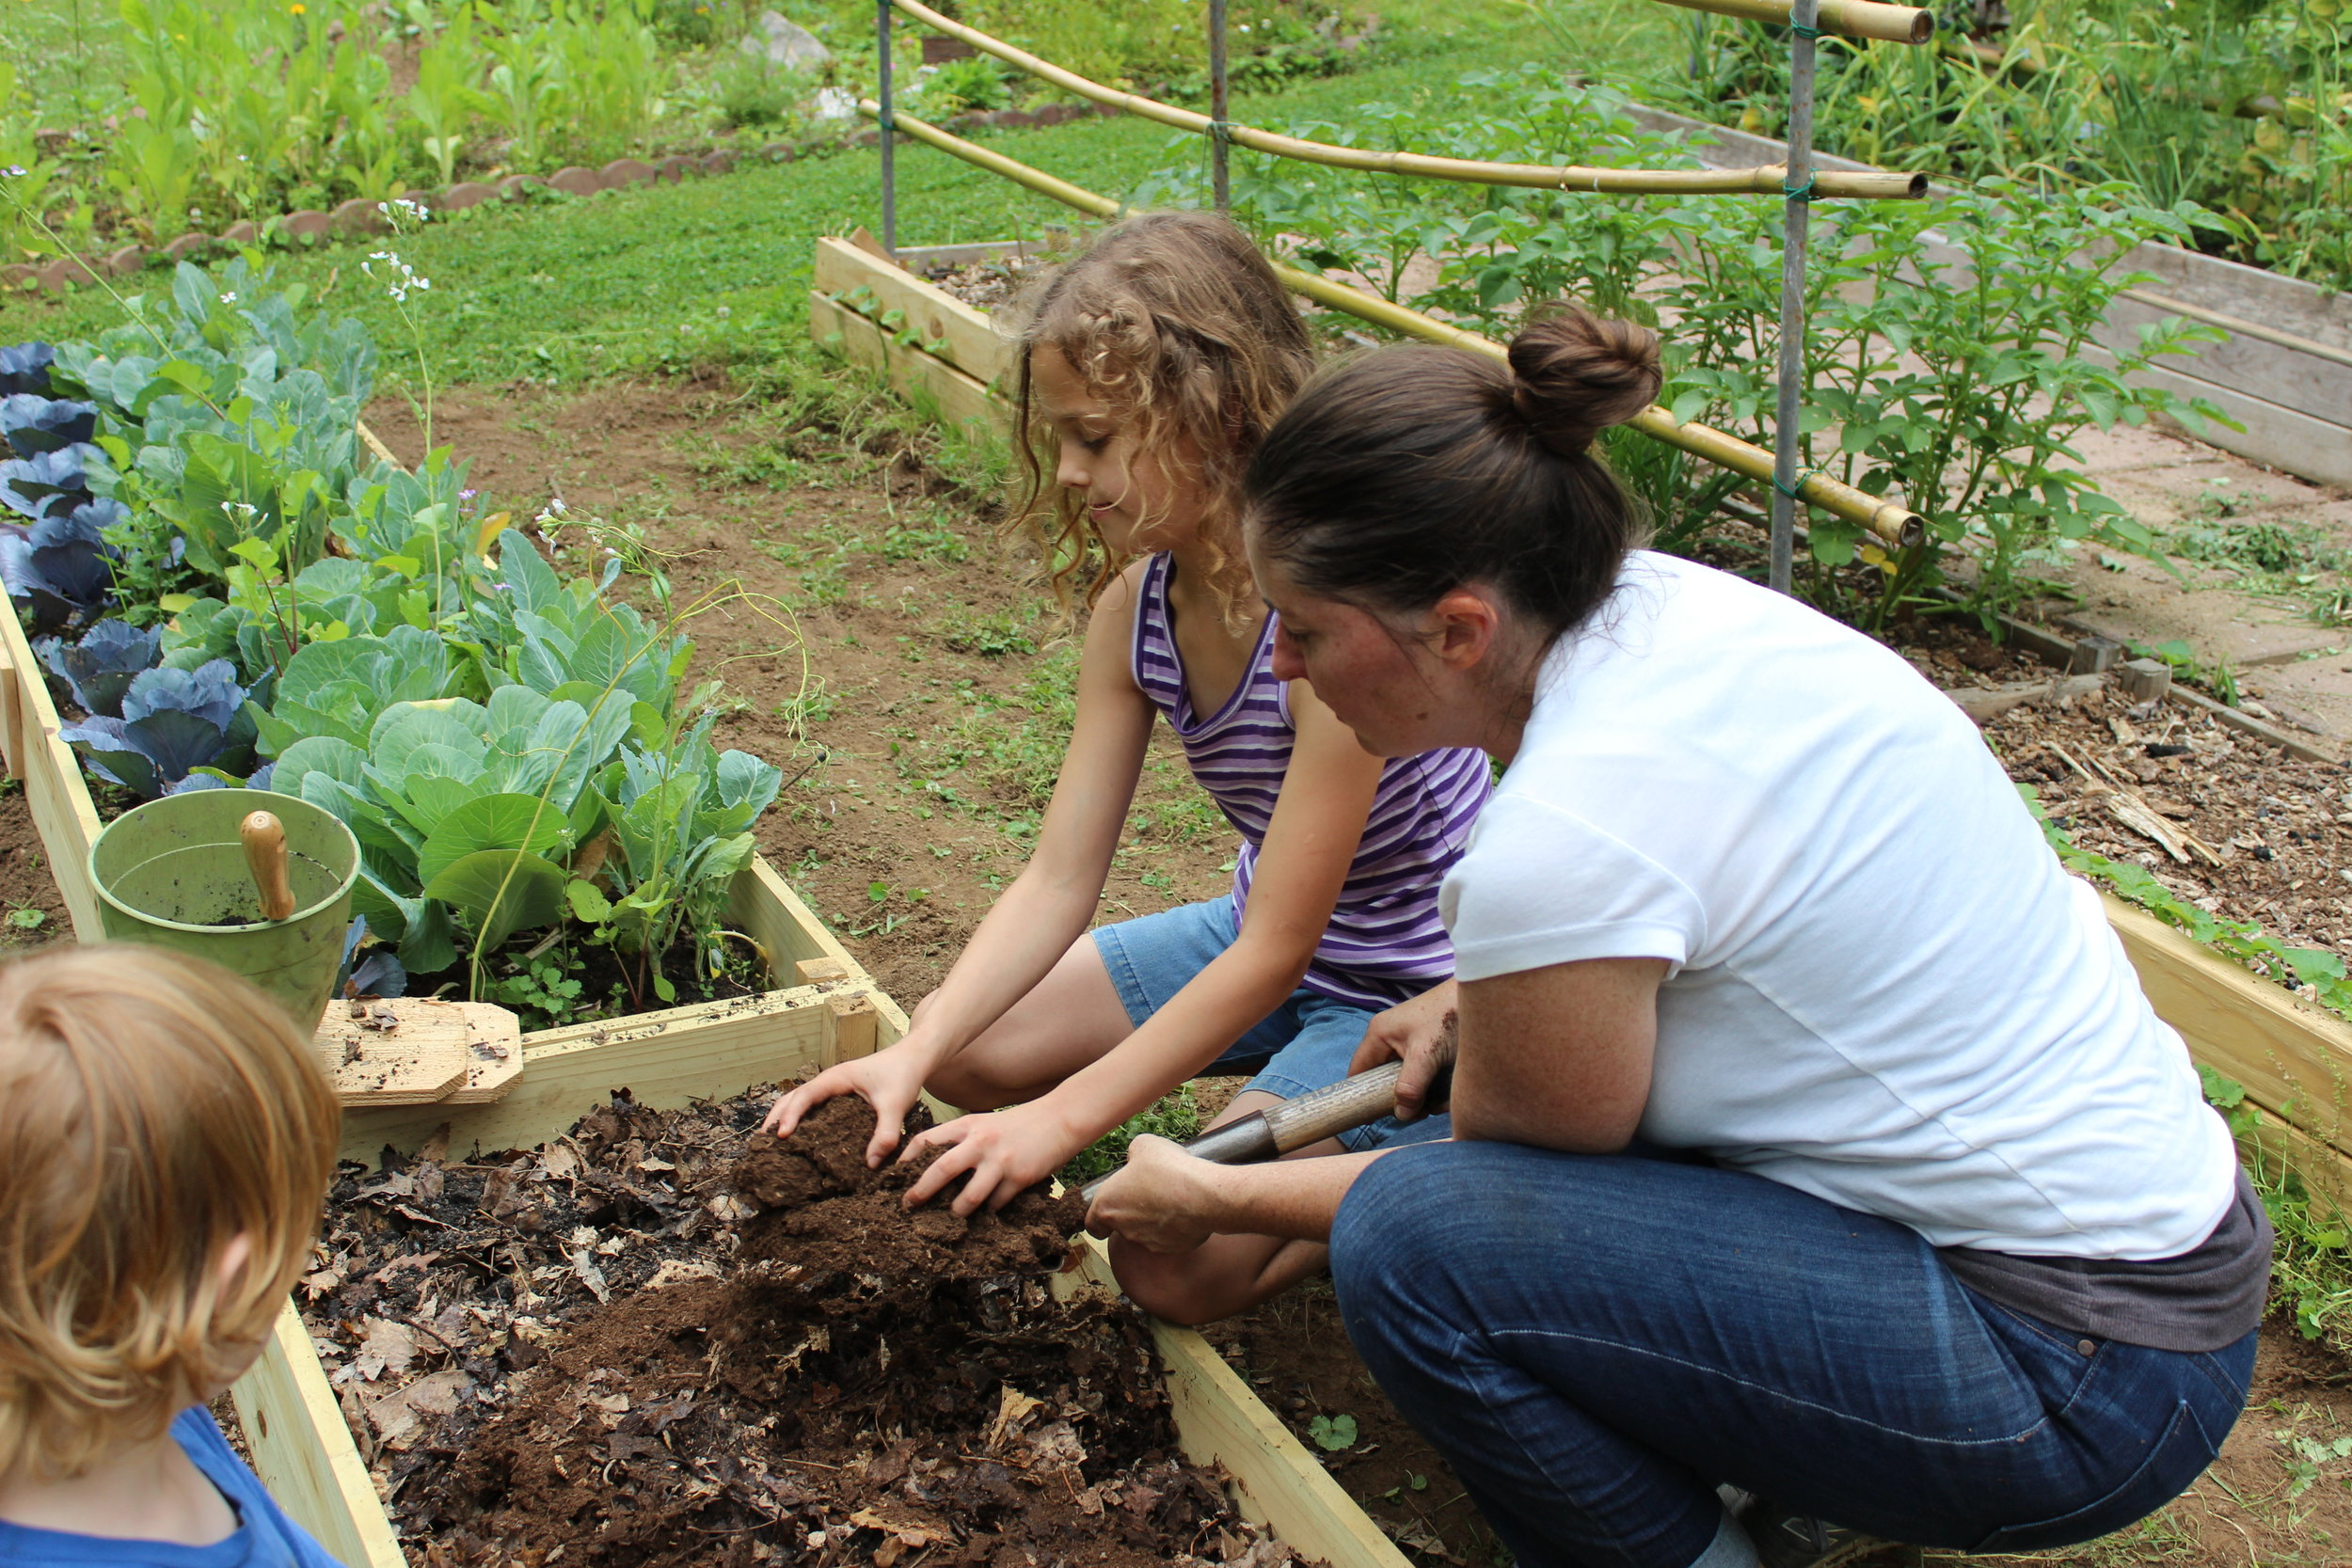 The purpose of the GROW gardens is to share knowledge and increase gardening skills within our community.